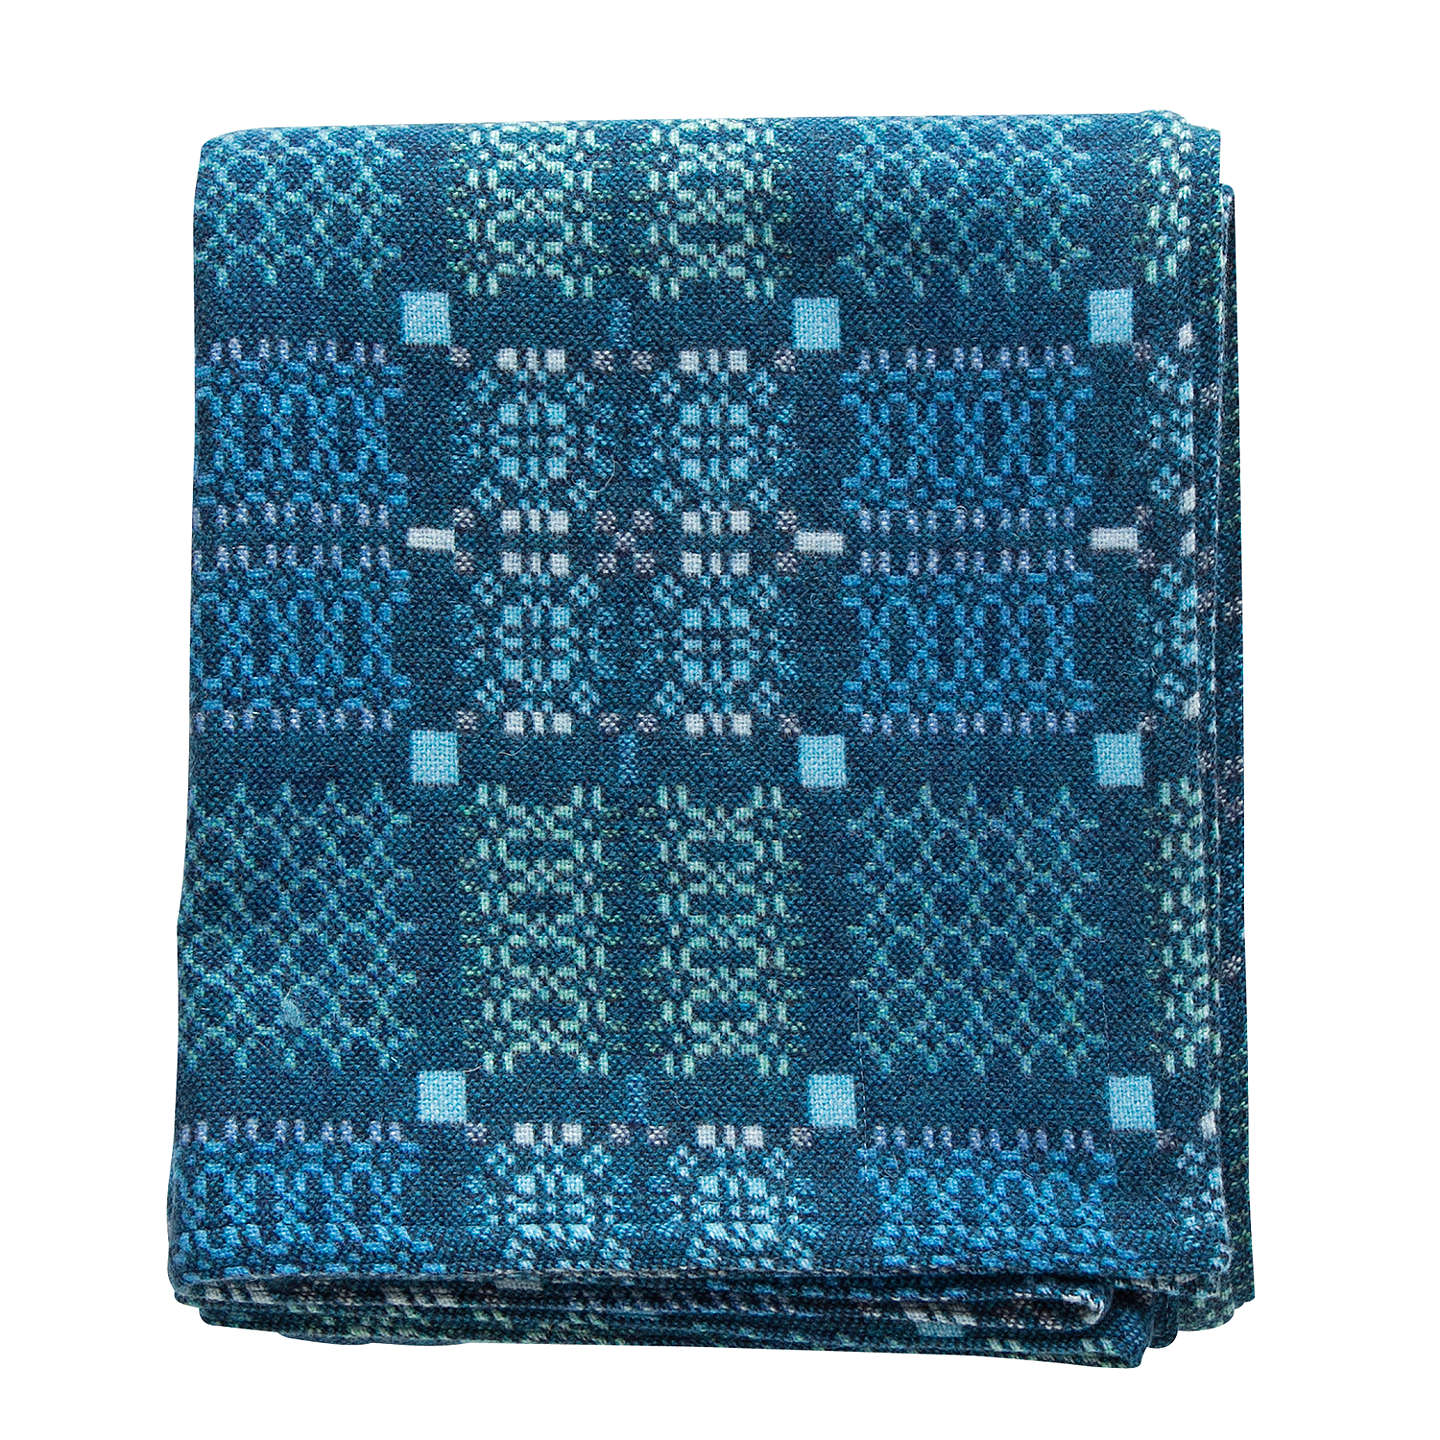 BuyMelin Tregwynt Knot Garden Throw, Blue Online at johnlewis.com